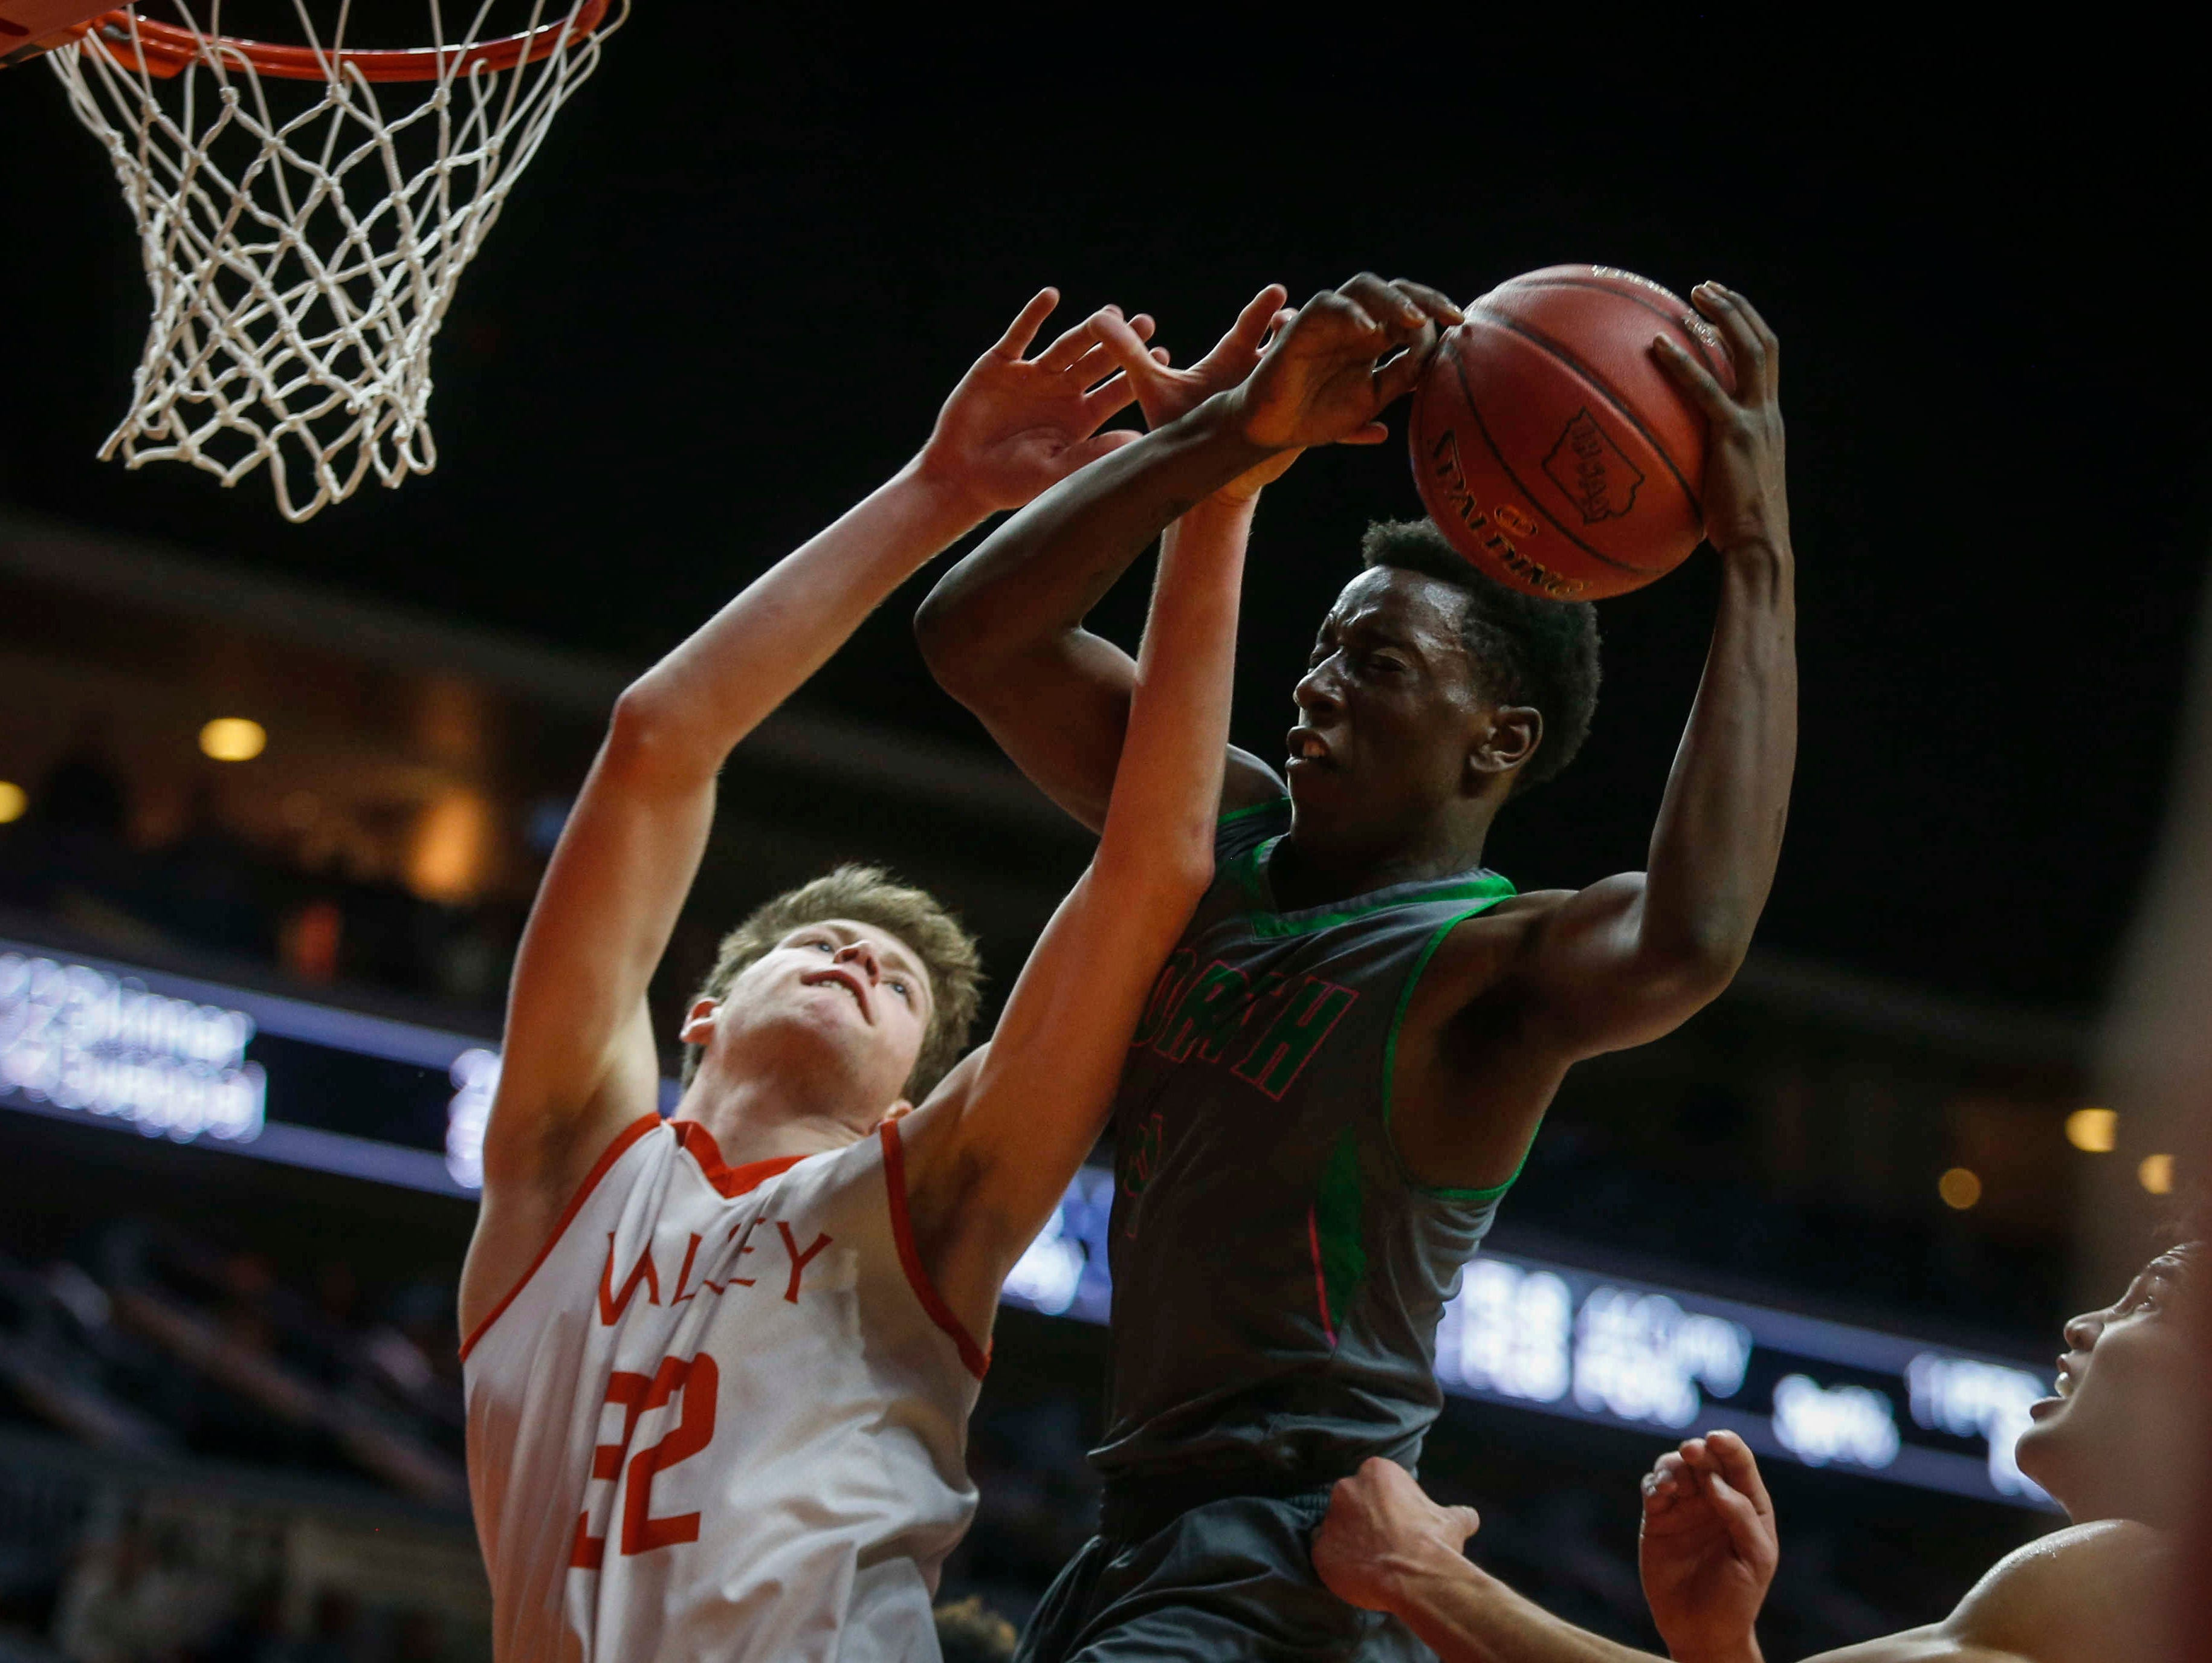 Des Moines north senior Dariq Myles pulls in a defensive rebound against Valley during the Iowa High School state basketball tournament at Wells Fargo Arena in Des Moines on Wednesday, March 8, 2017.